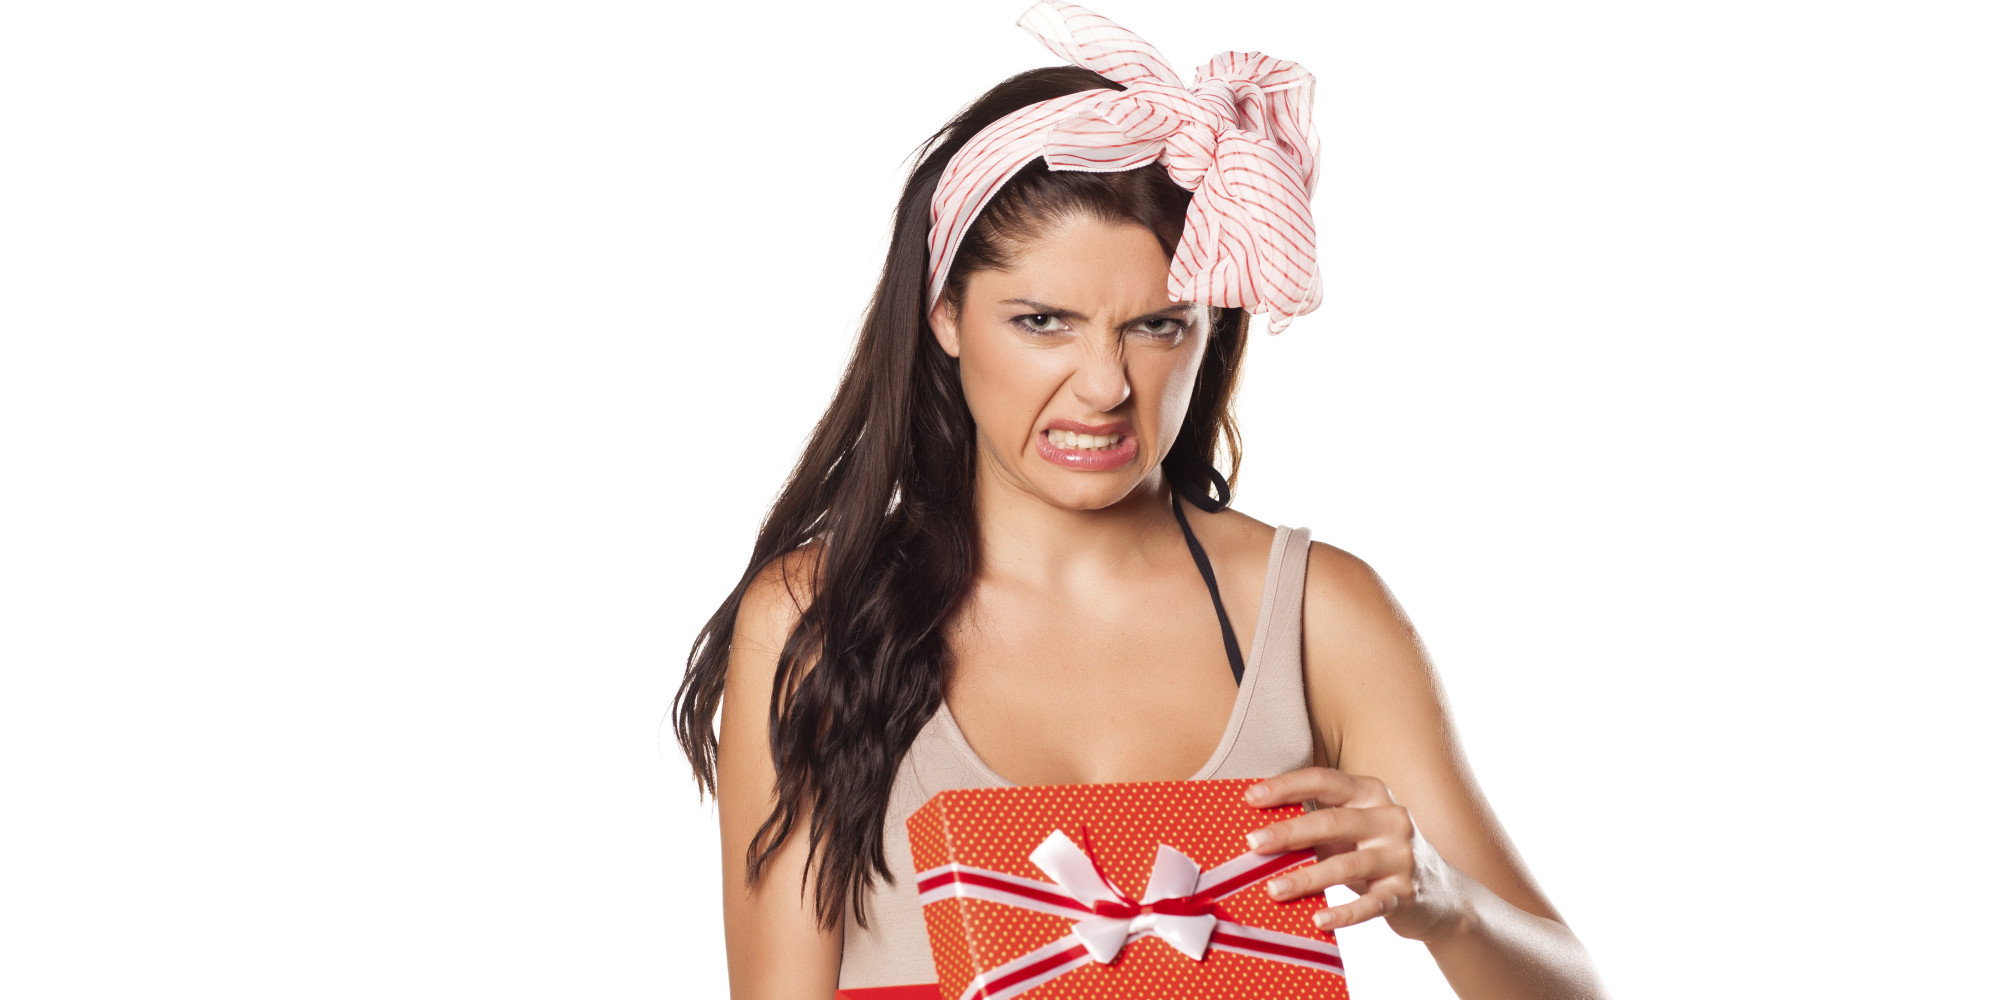 The 5 Stages Of Receiving A Bad Christmas Gift